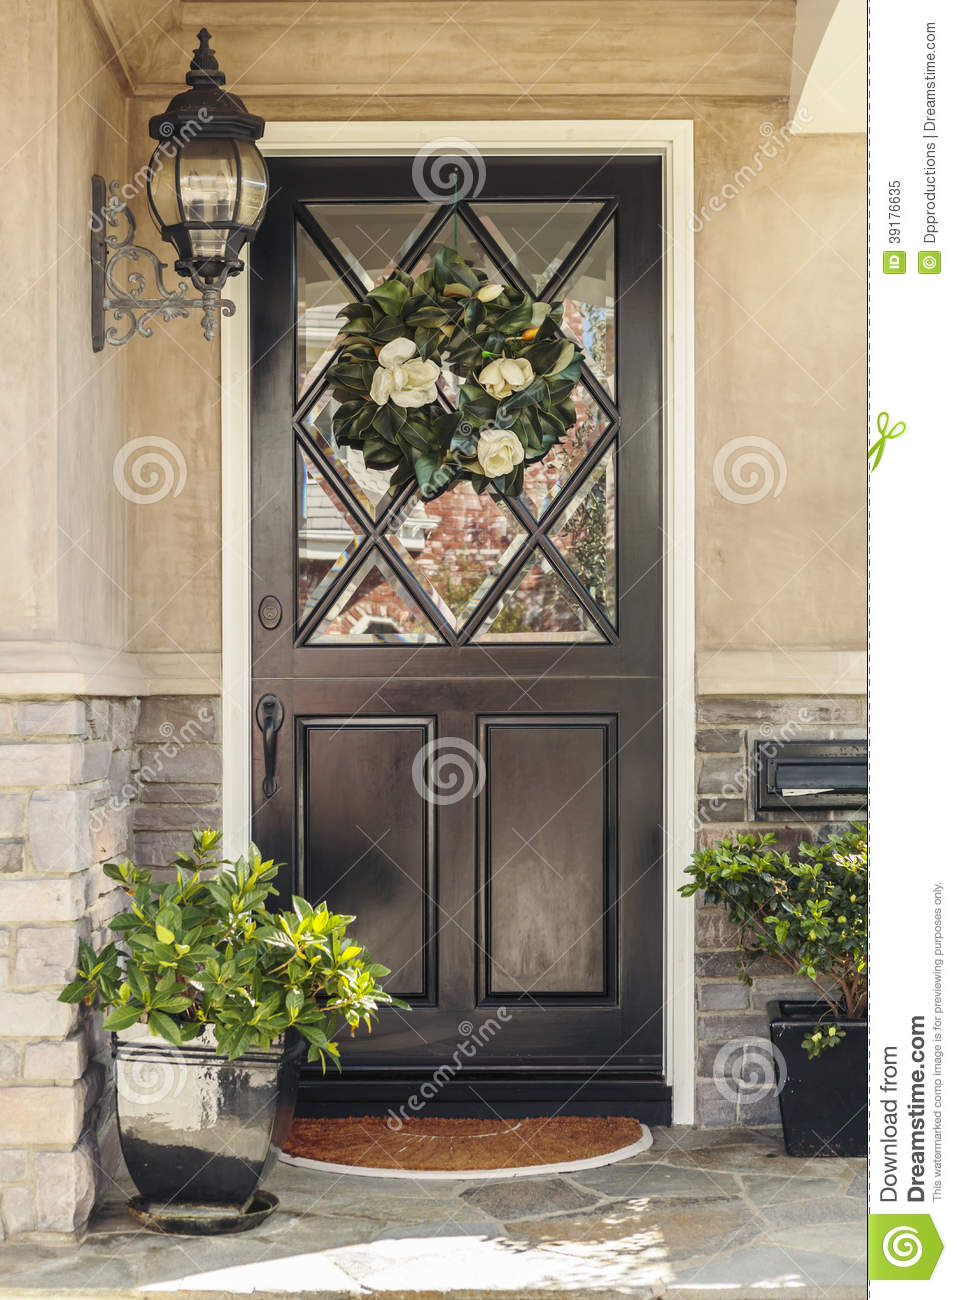 Black Front Door To Home With Flower Wreath Stock Photo